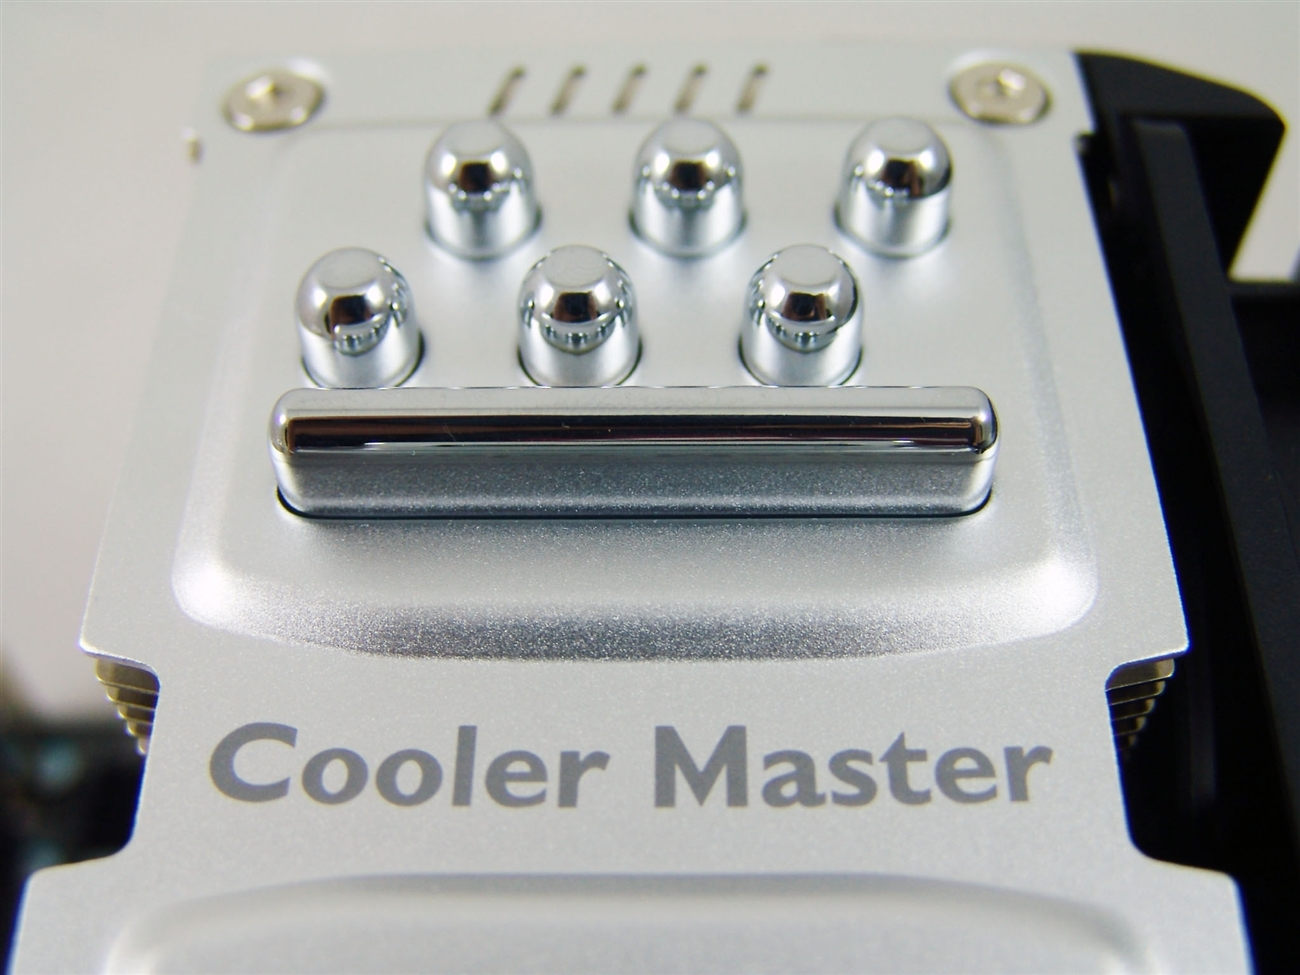 4685_99_cooler_master_tpc_812_vapor_chamber_cpu_cooler_review_full.jpg